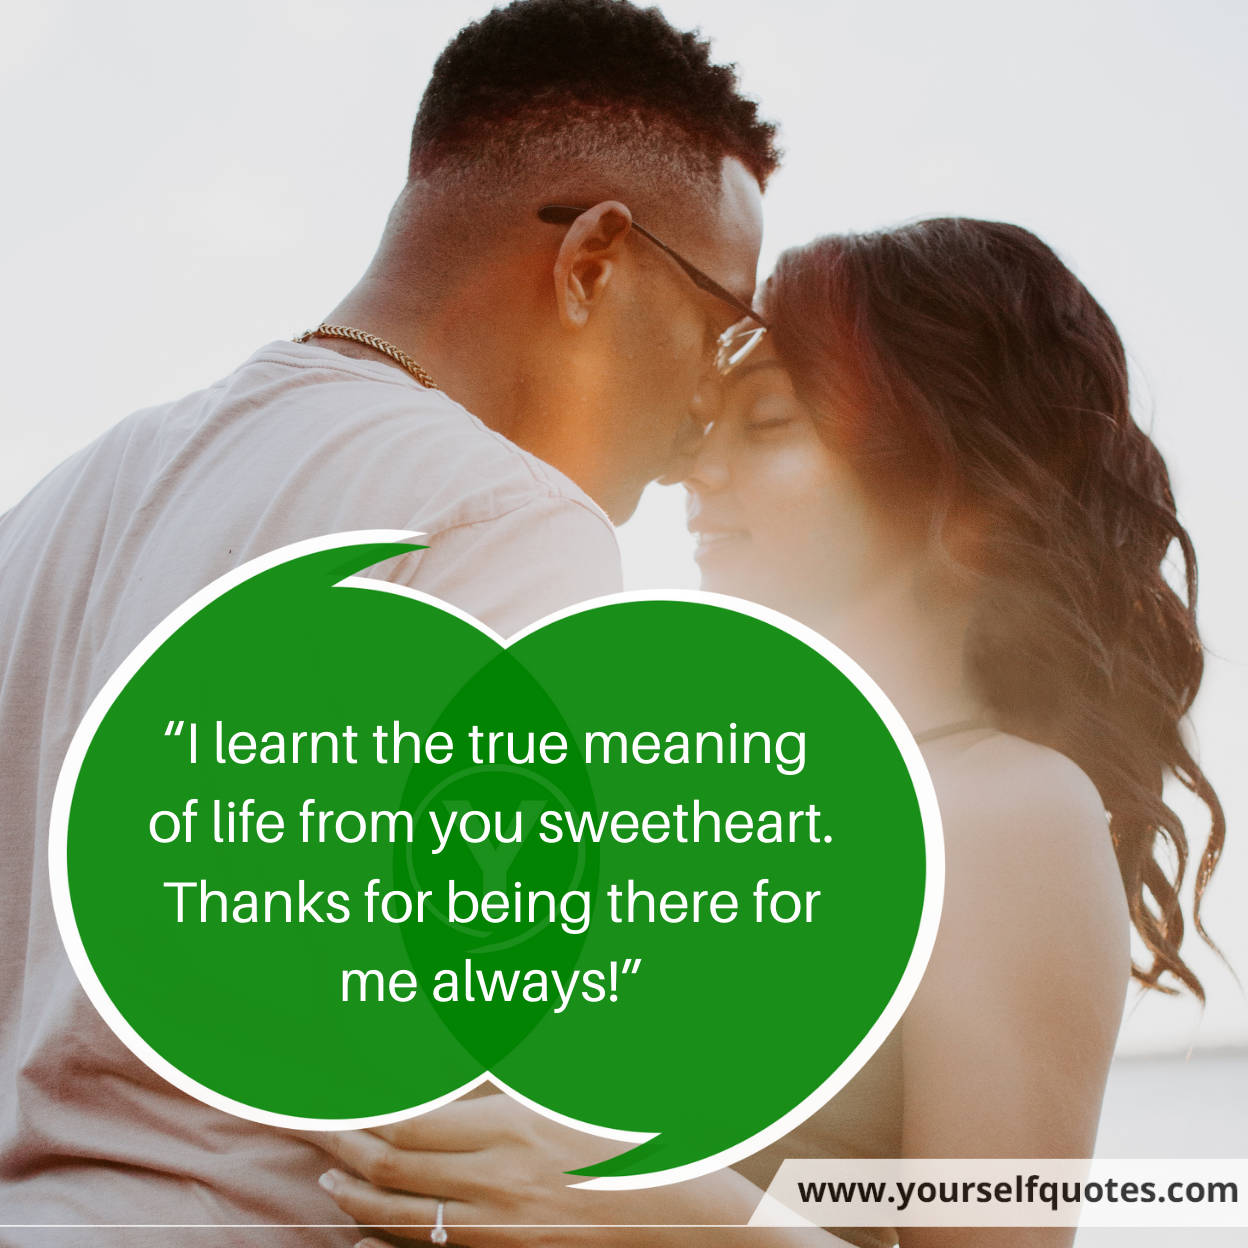 Best Quotes For Girlfriend